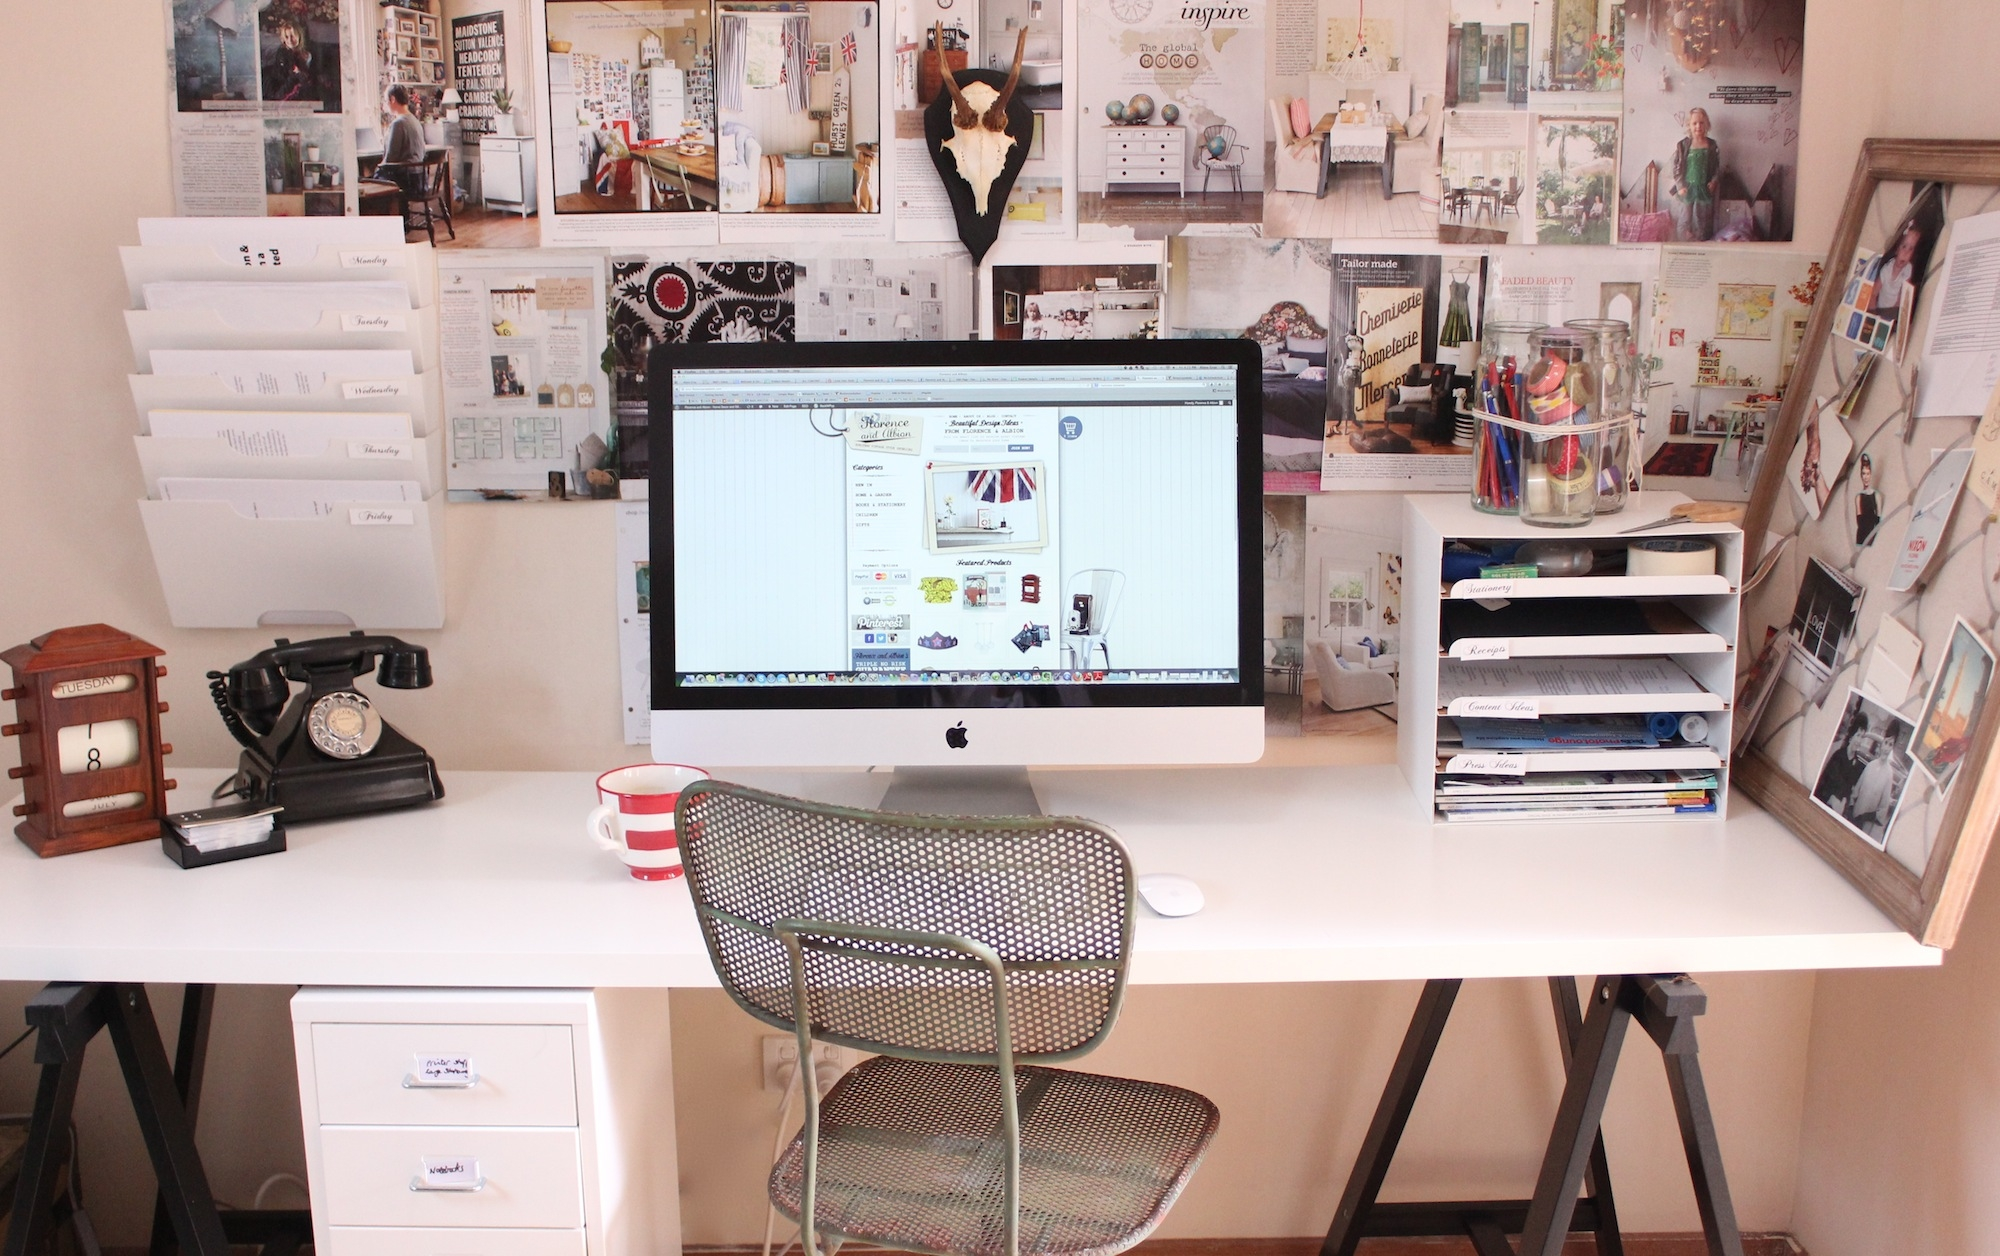 6 Ways To Turn Your House Into A Productive Home Environment: 6 Tips To Create An Organized & Productive Home Office